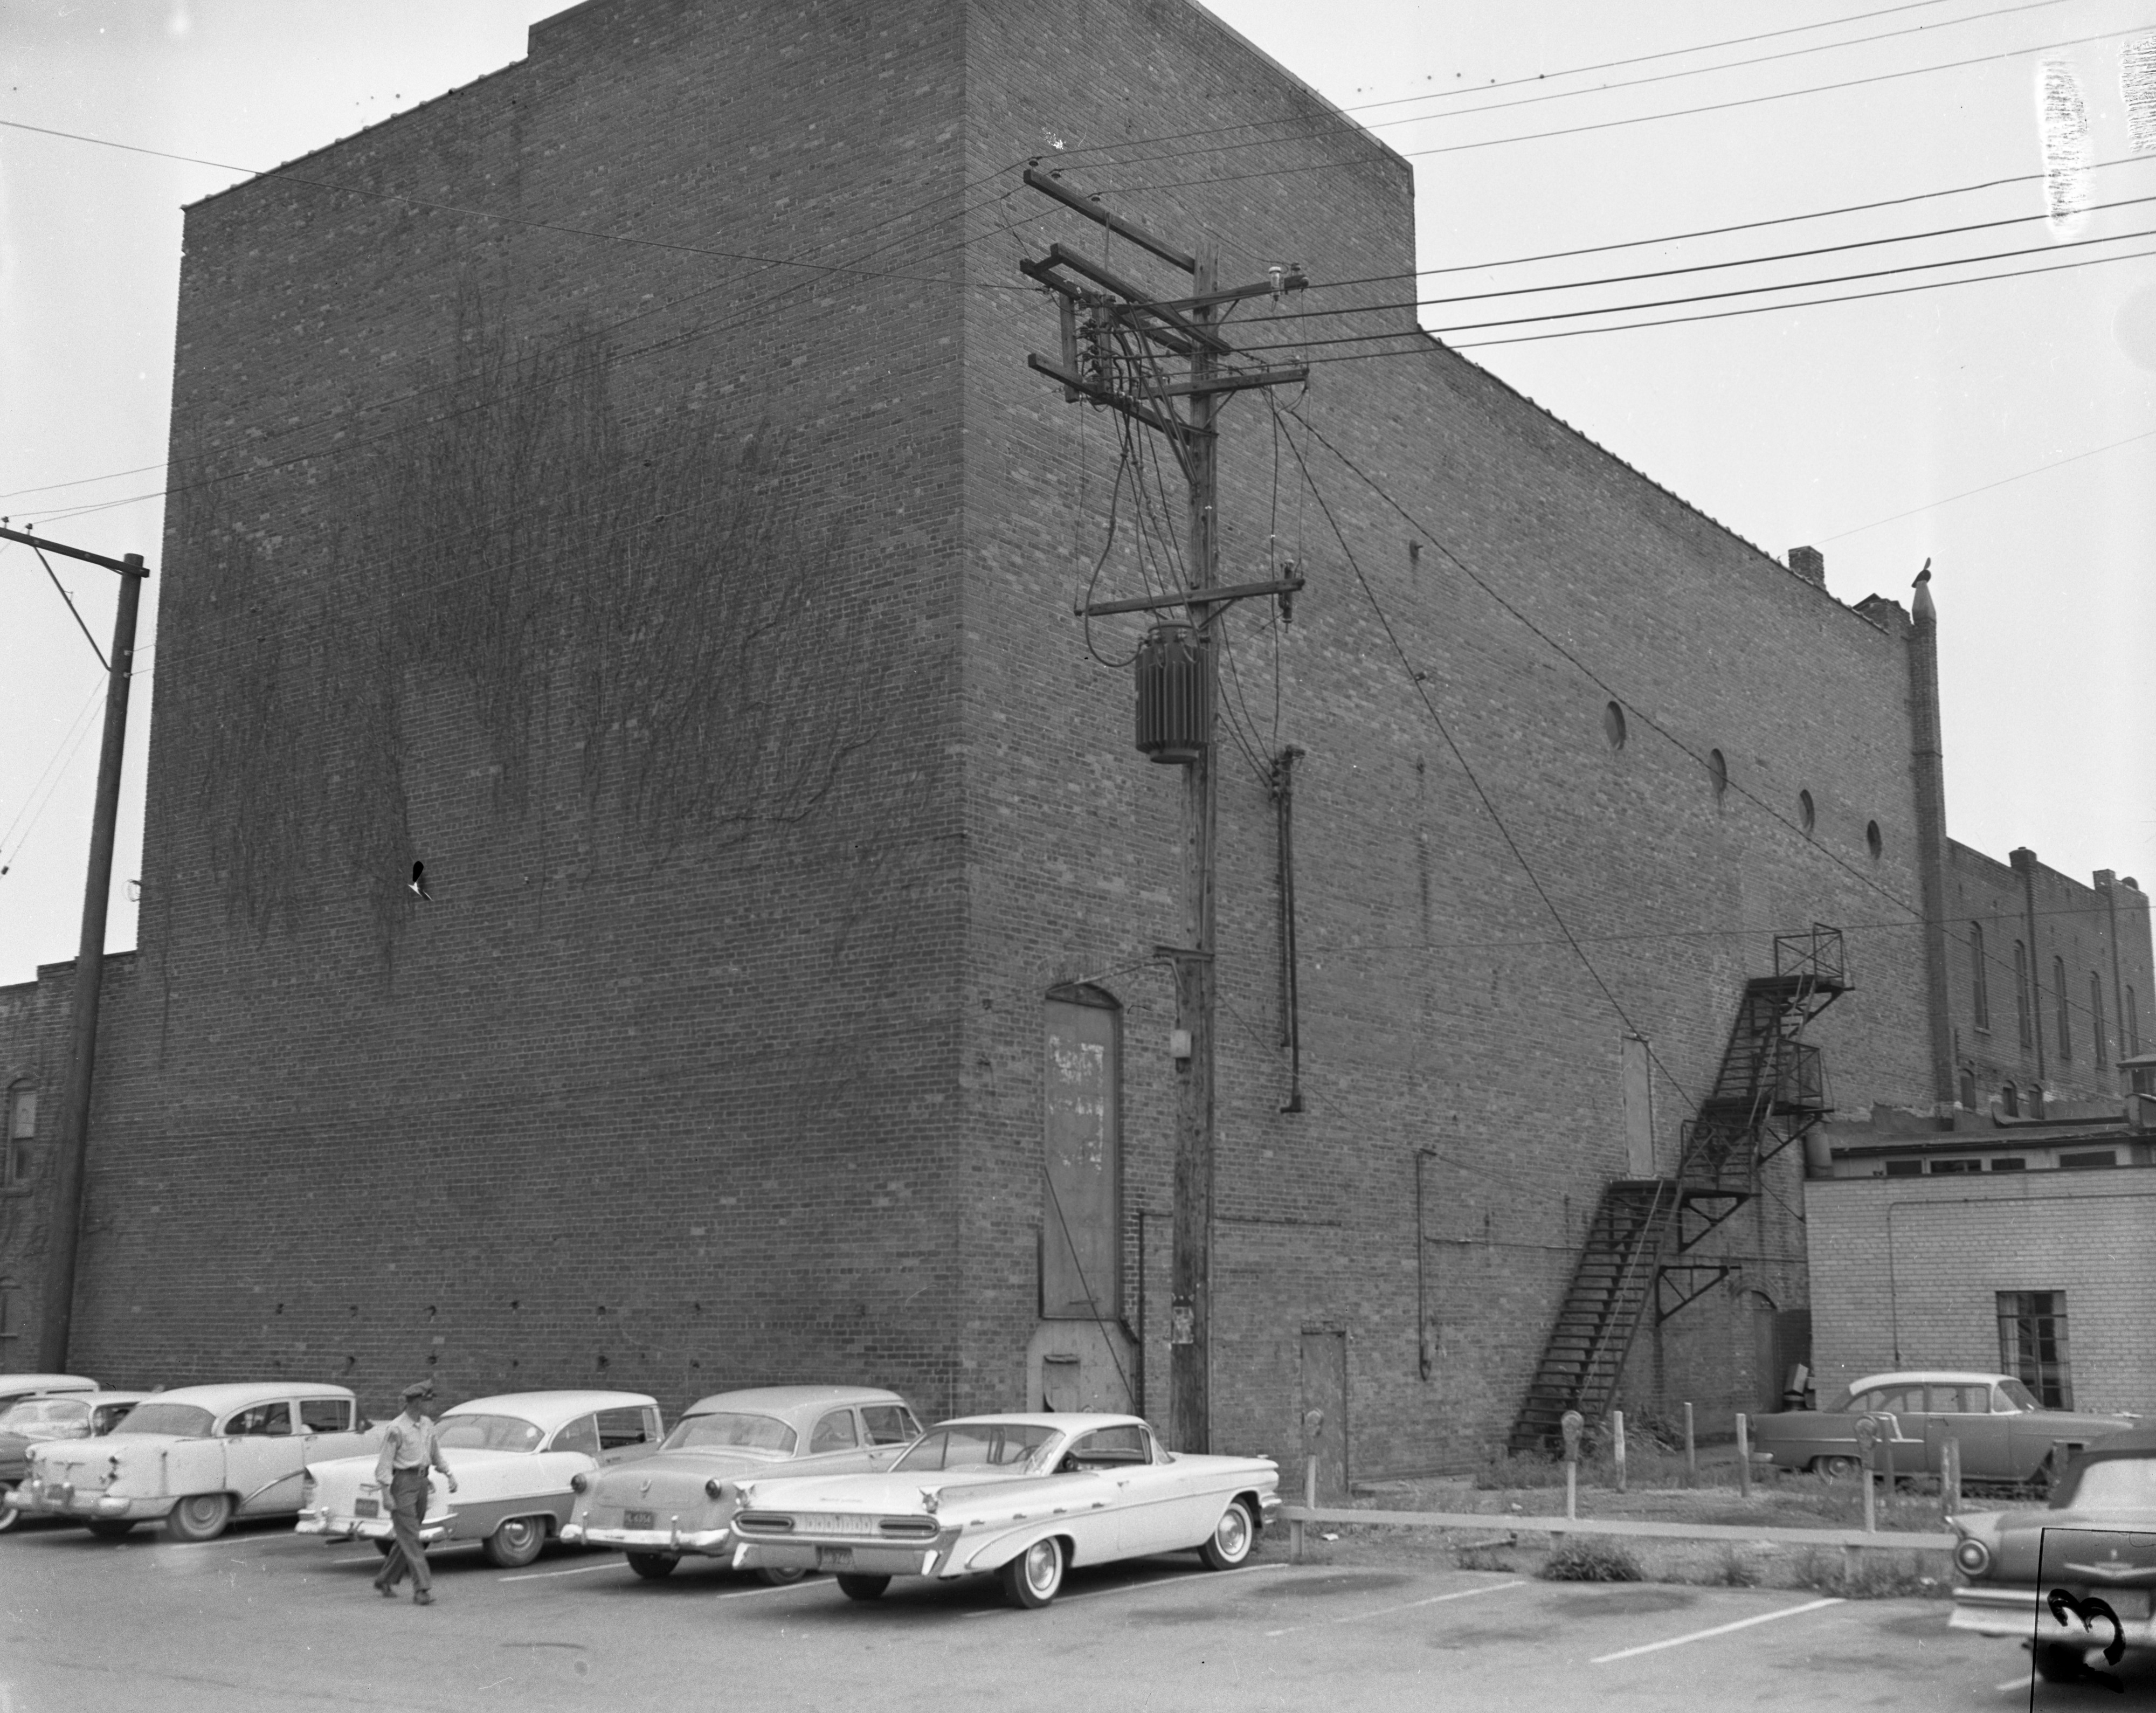 Rear of Wuerth Theatre in Ypsilanti, July 1959 image